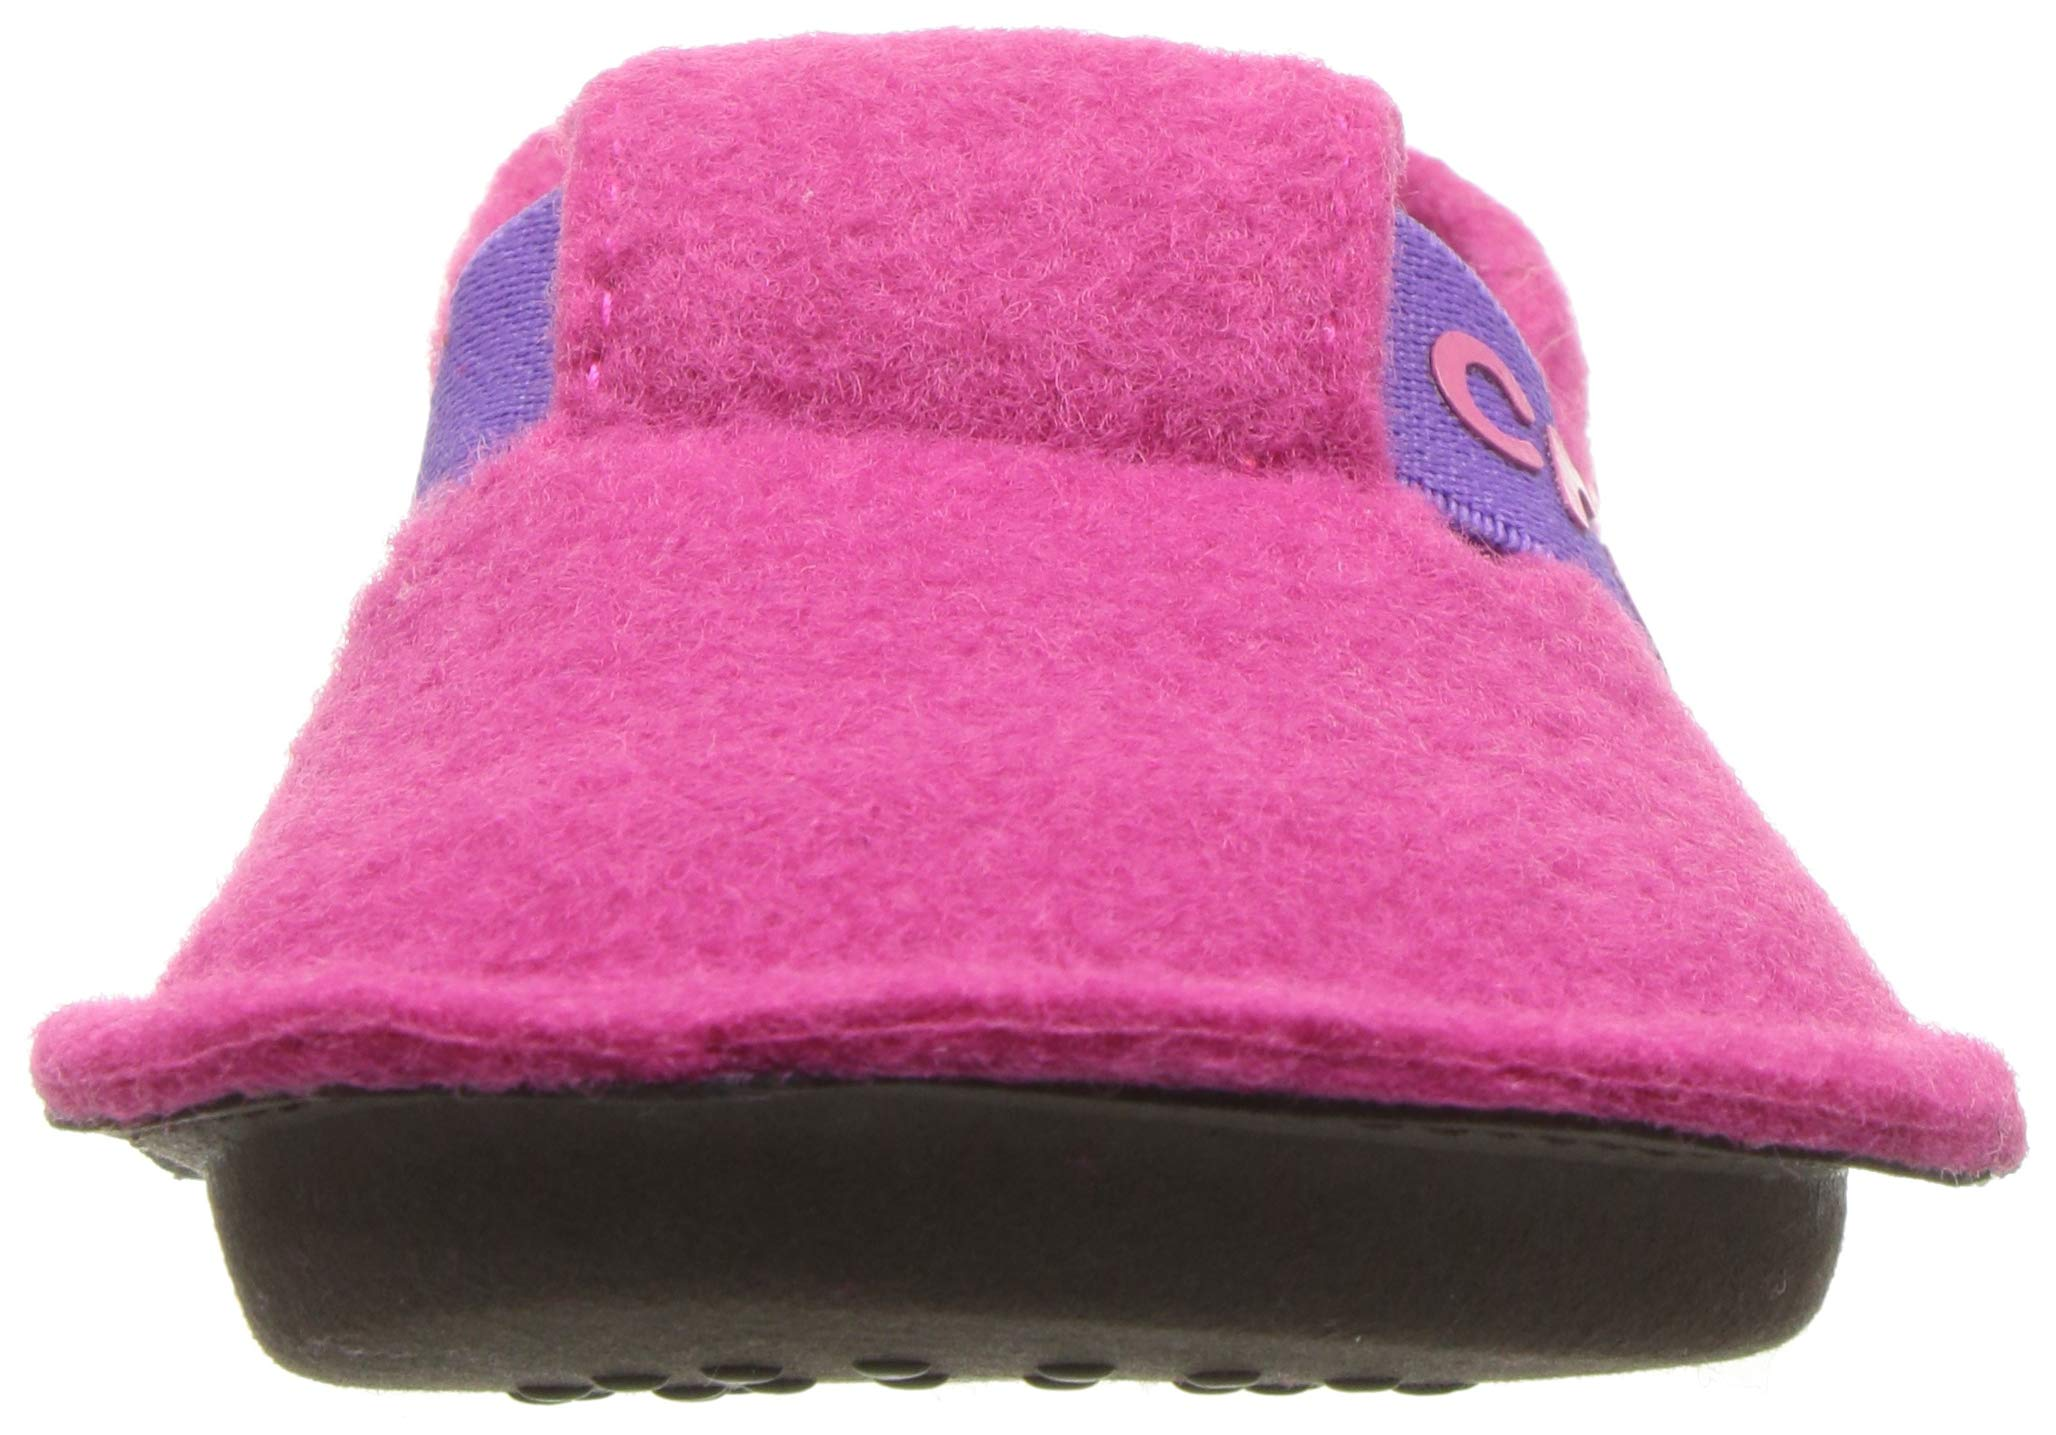 Crocs Kids Boys and Girls Classic Slipper Comfortable Slip On Toddler Shoe with Soft  Liner